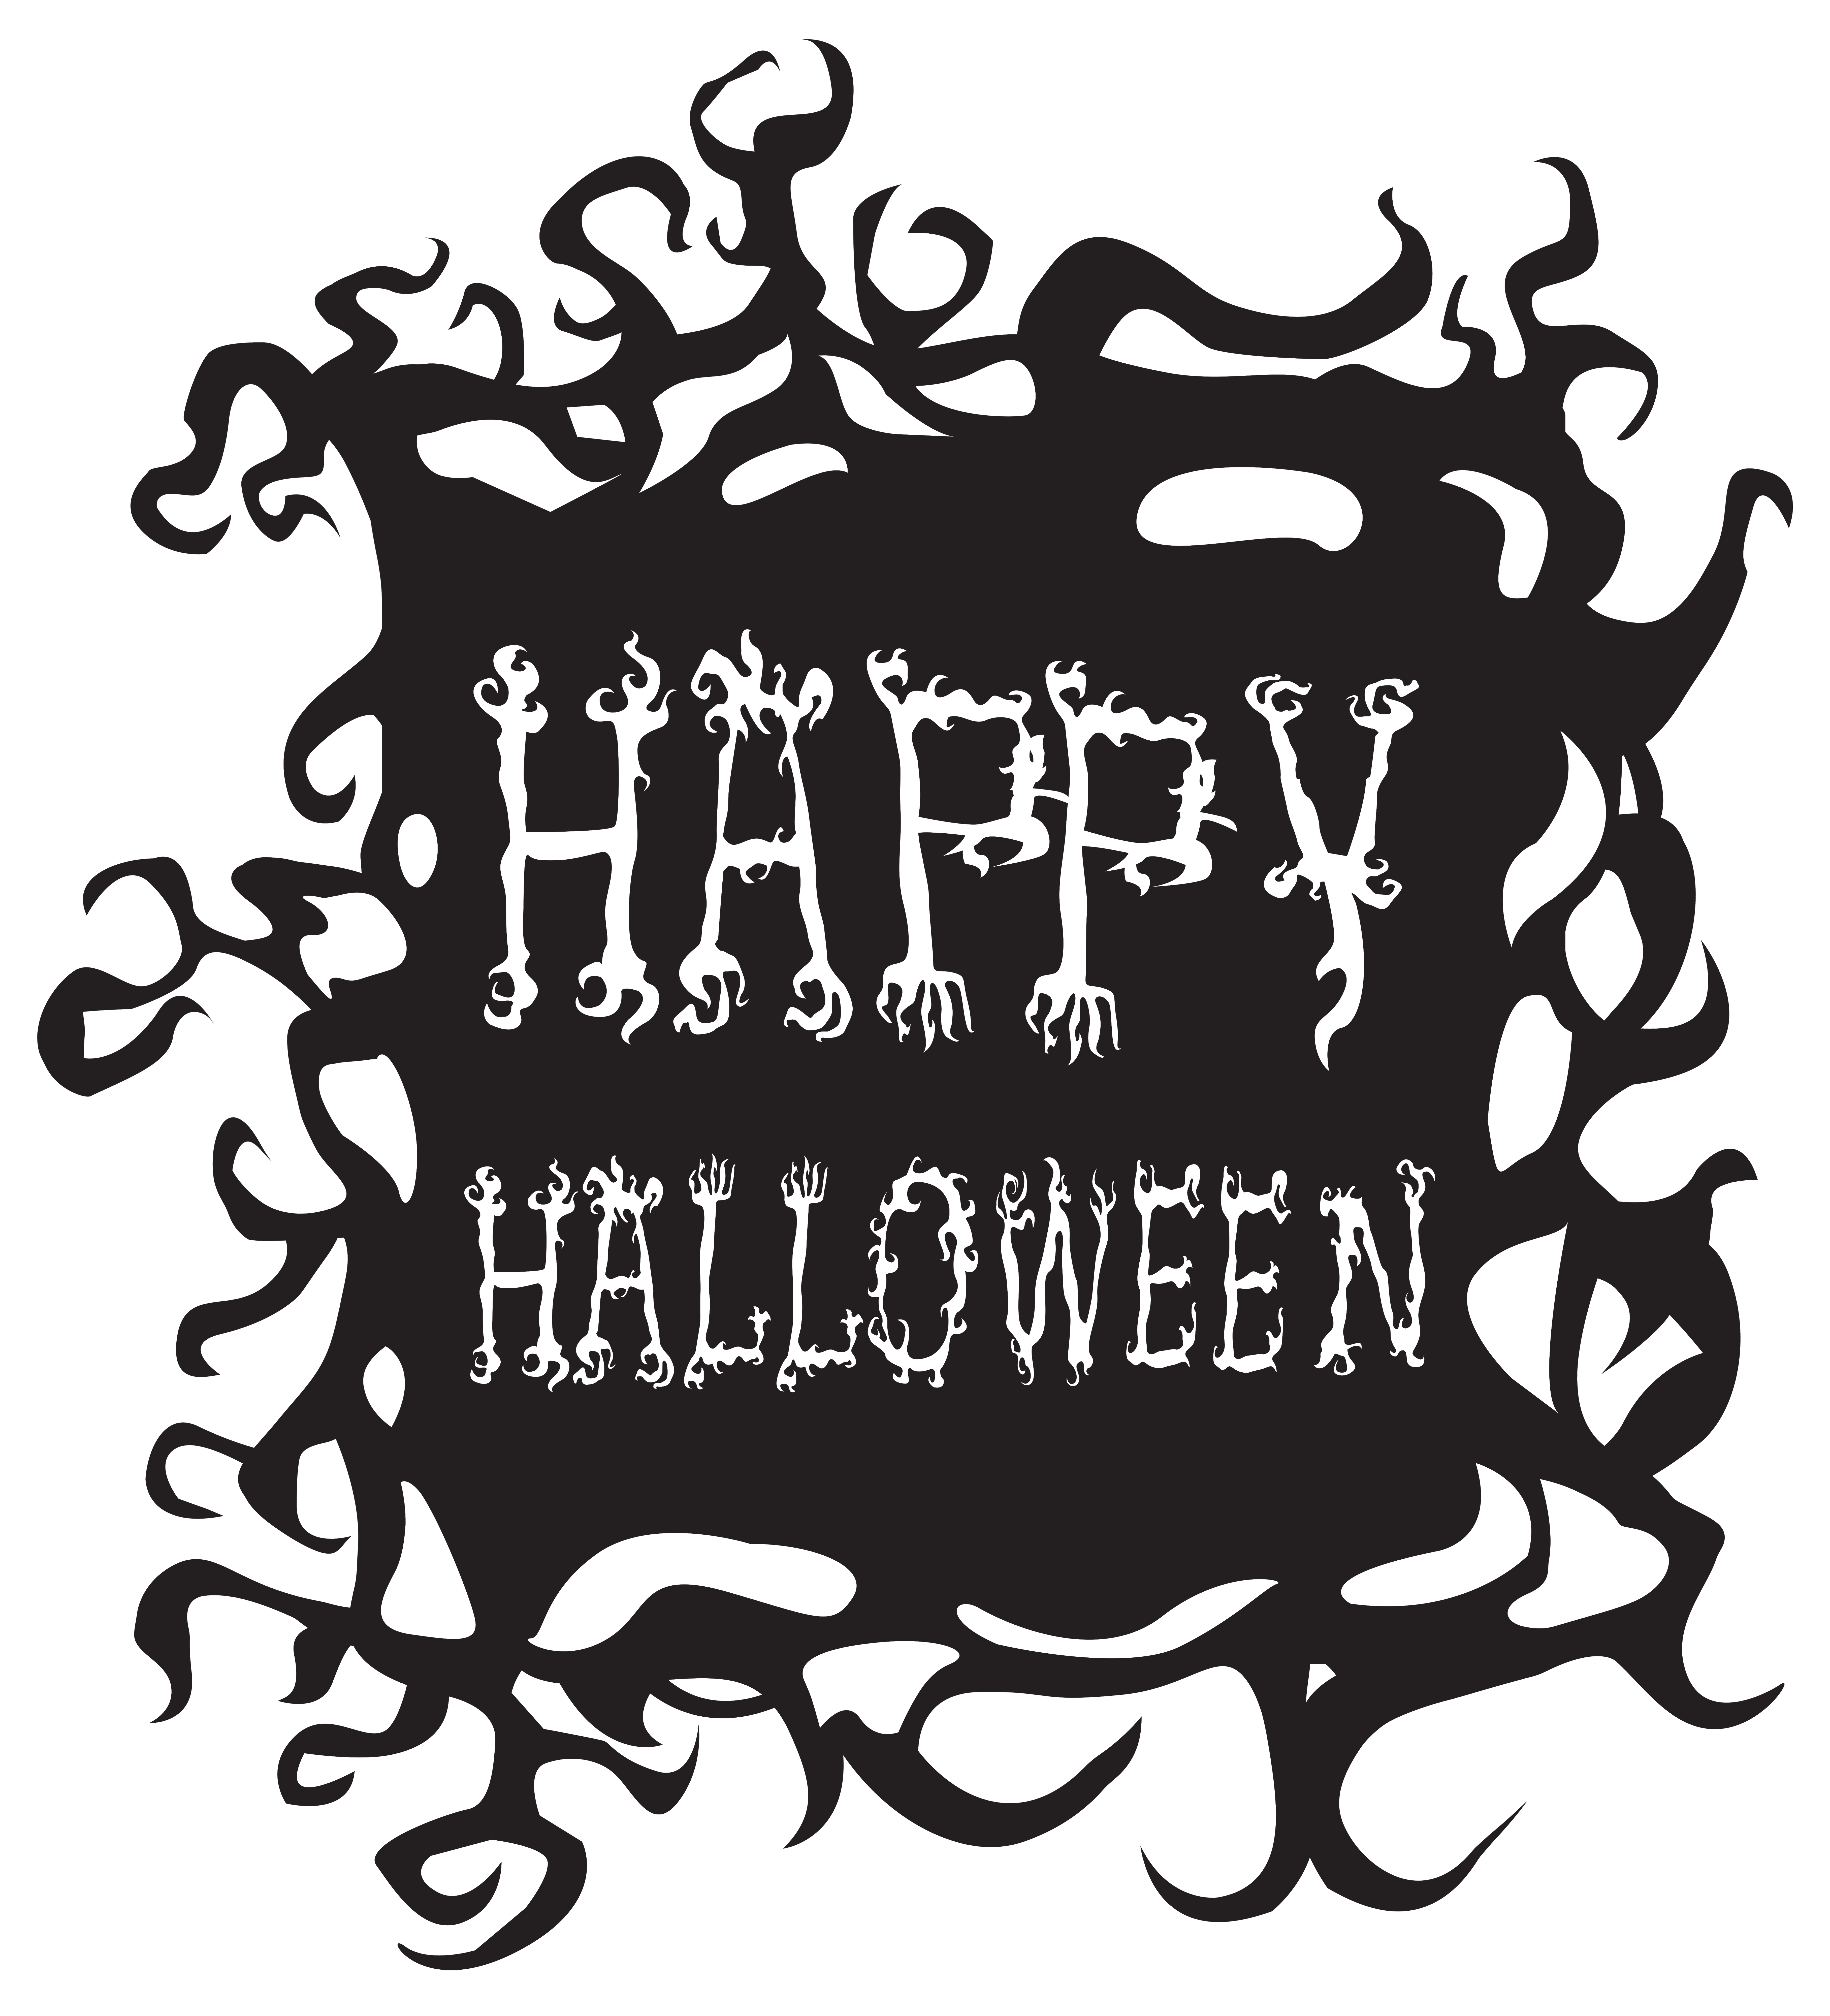 Happy Halloween PNG Free Clip Art Image.